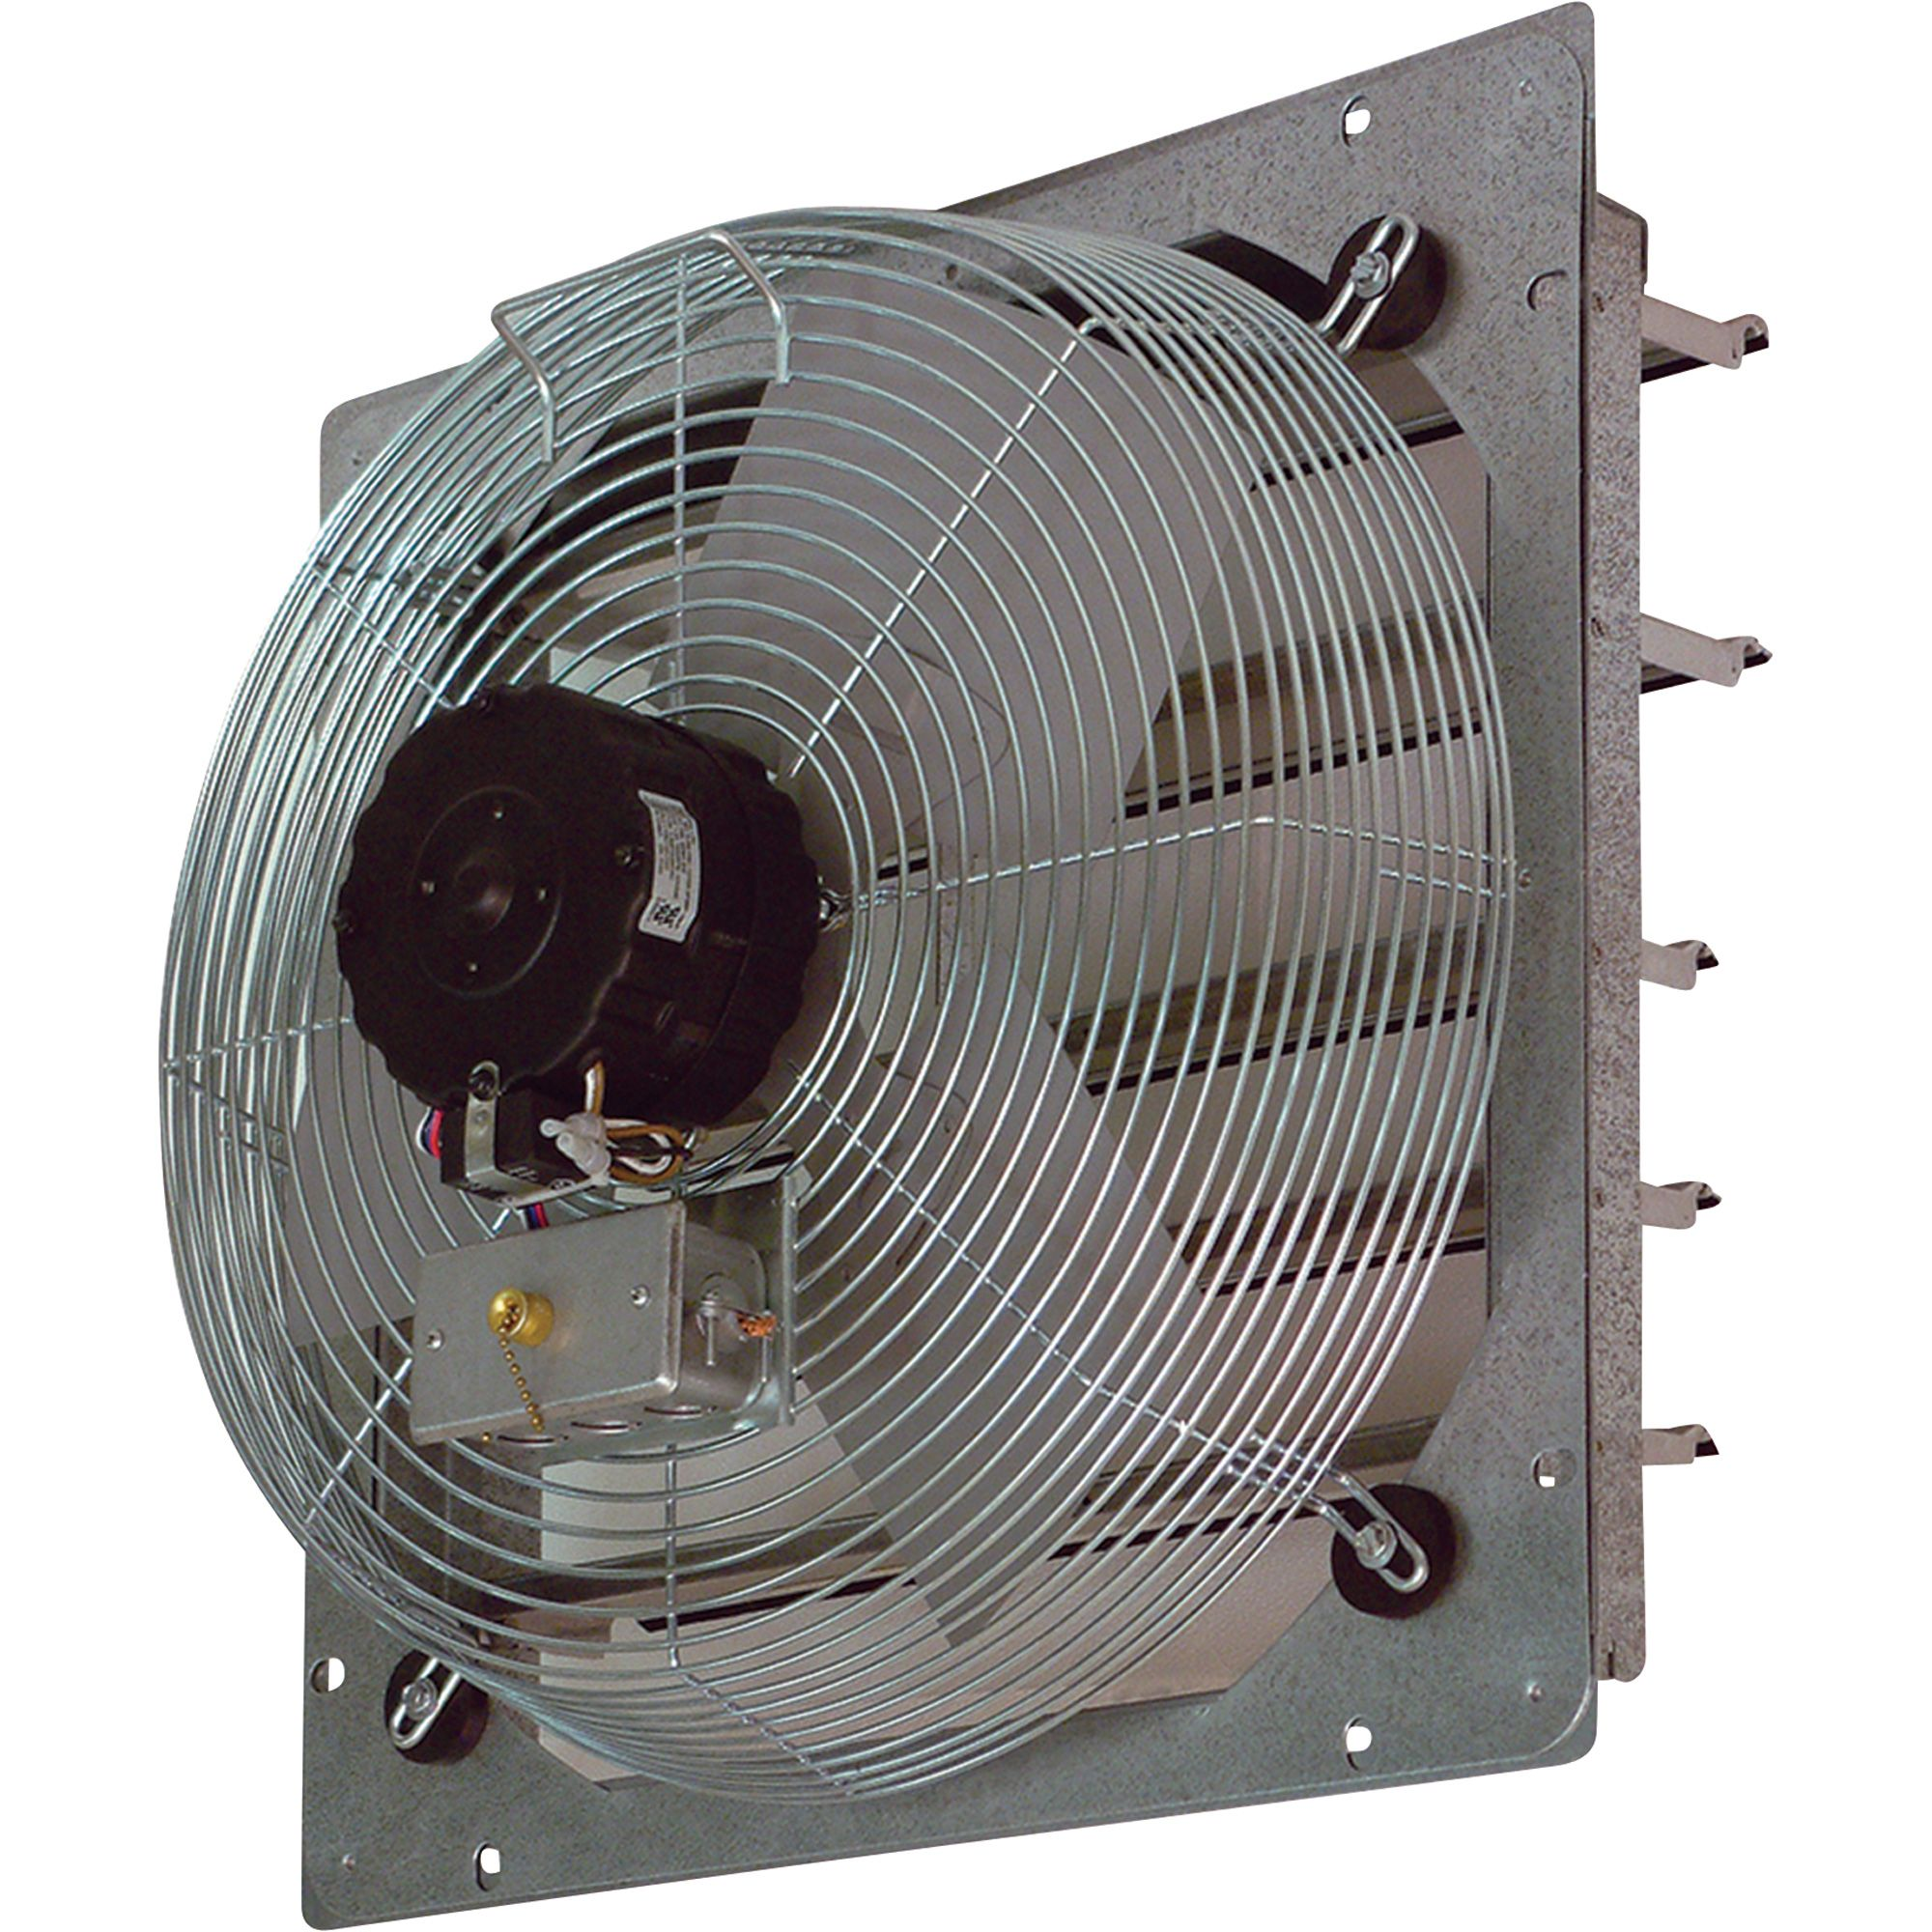 Tpi Shutter Mounted Direct Drive Exhaust Fan 12in Model Ce 12 Ds In 2020 Exhaust Fan Wall Exhaust Fan Wall Fans